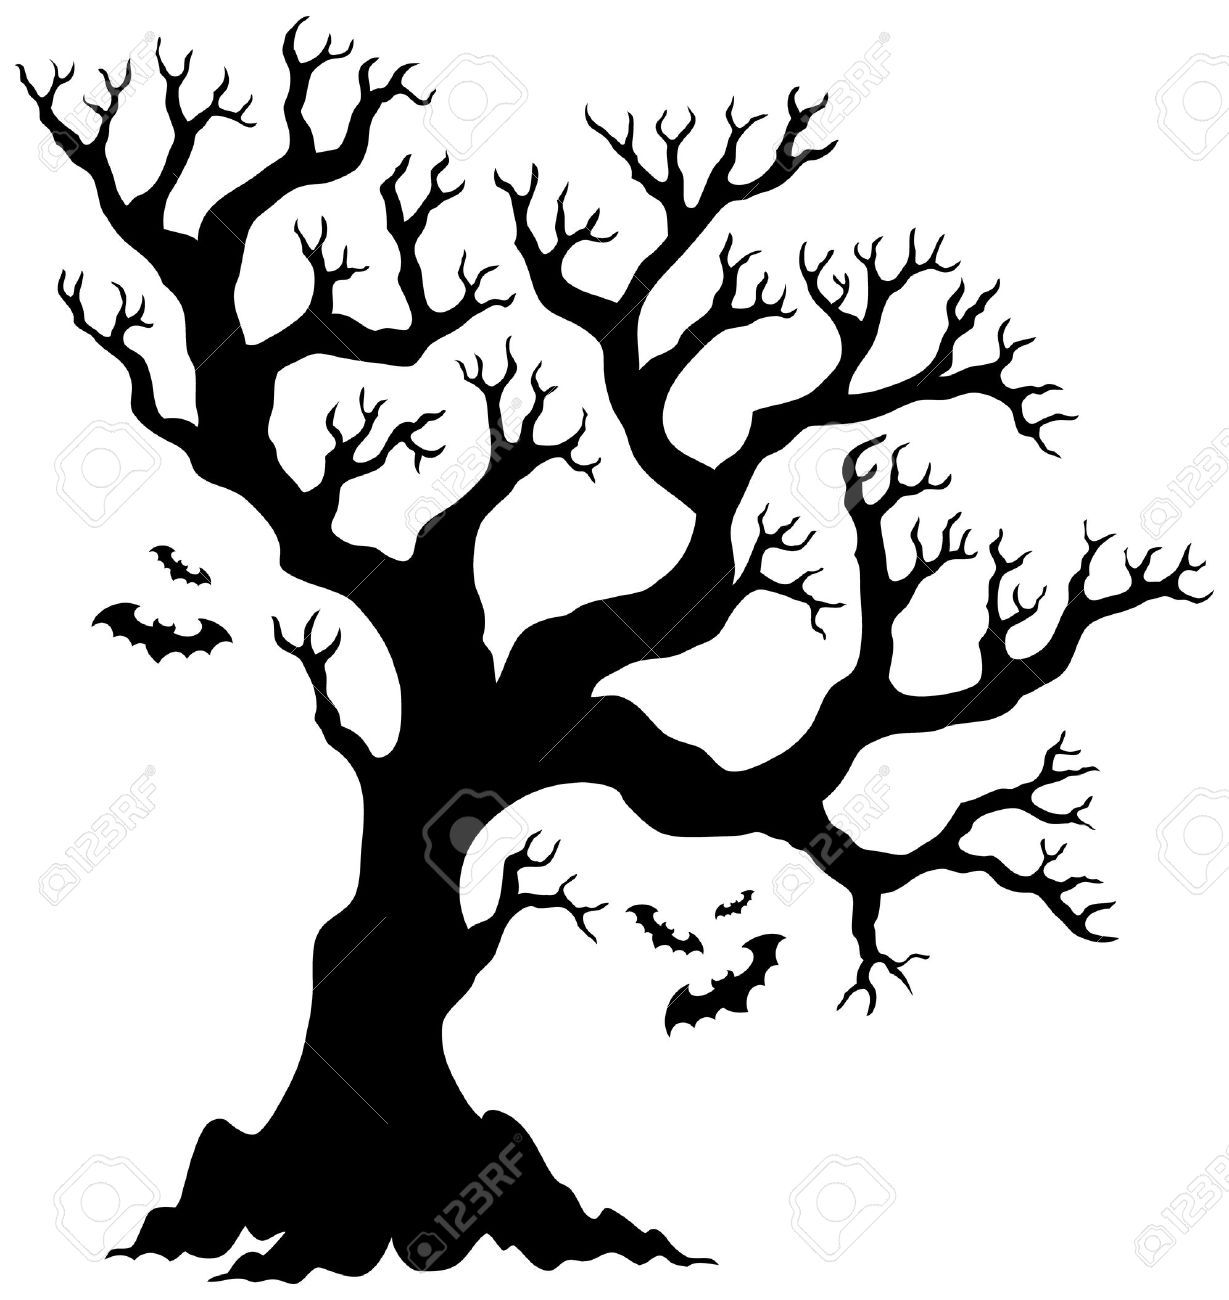 small resolution of silhouette halloween tree with bats royalty free cliparts vectors